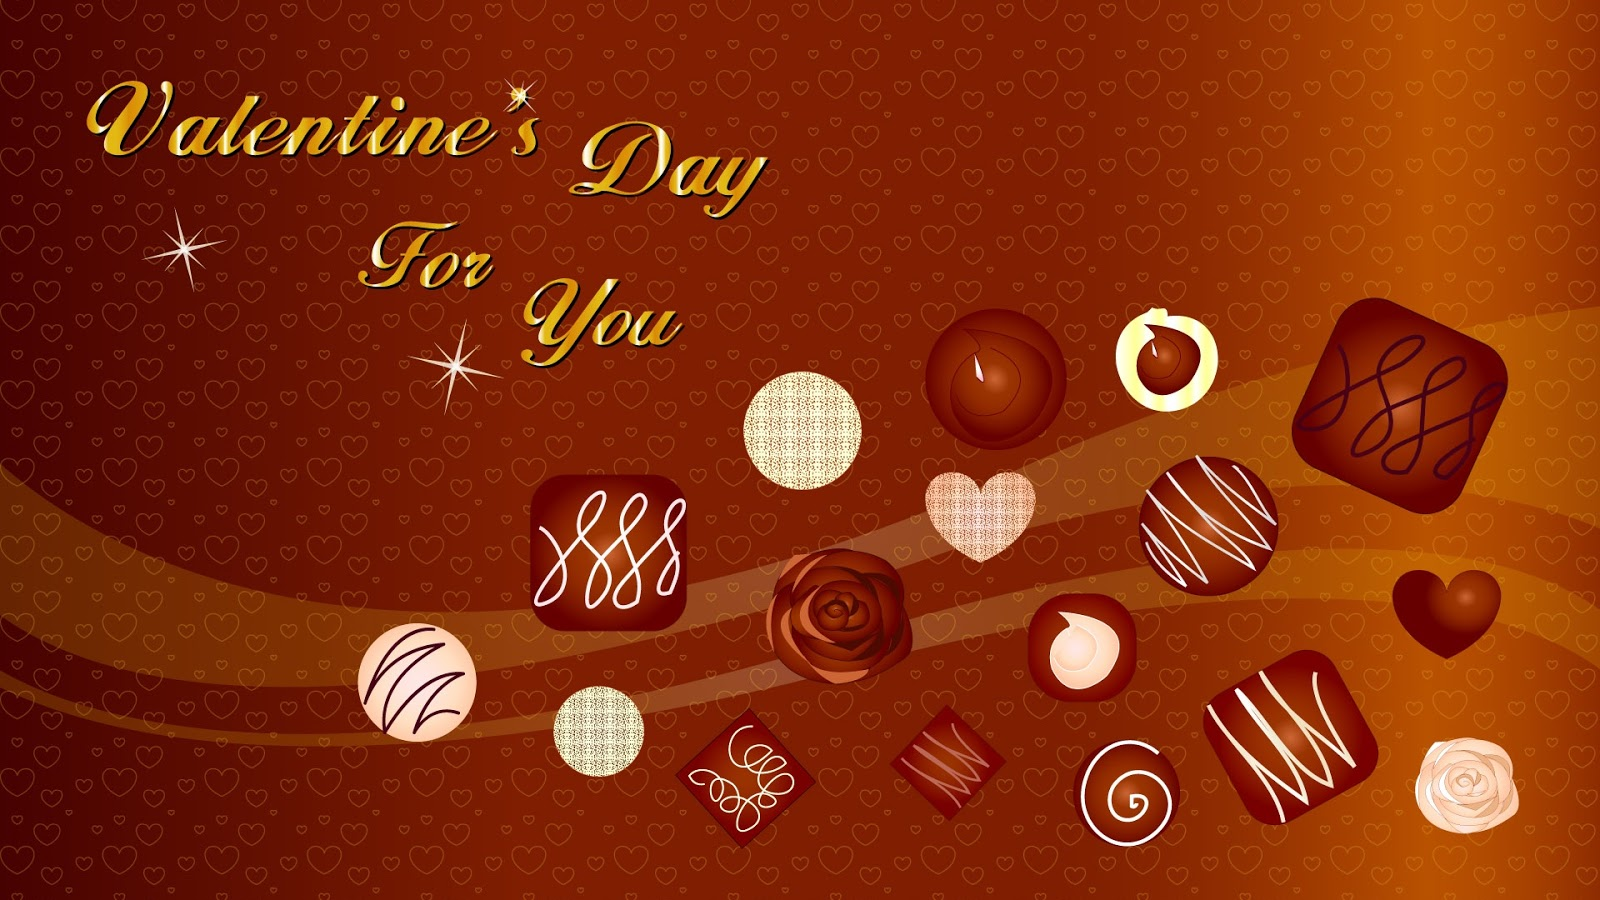 Valentines Wallpaper For Computer 1600x900